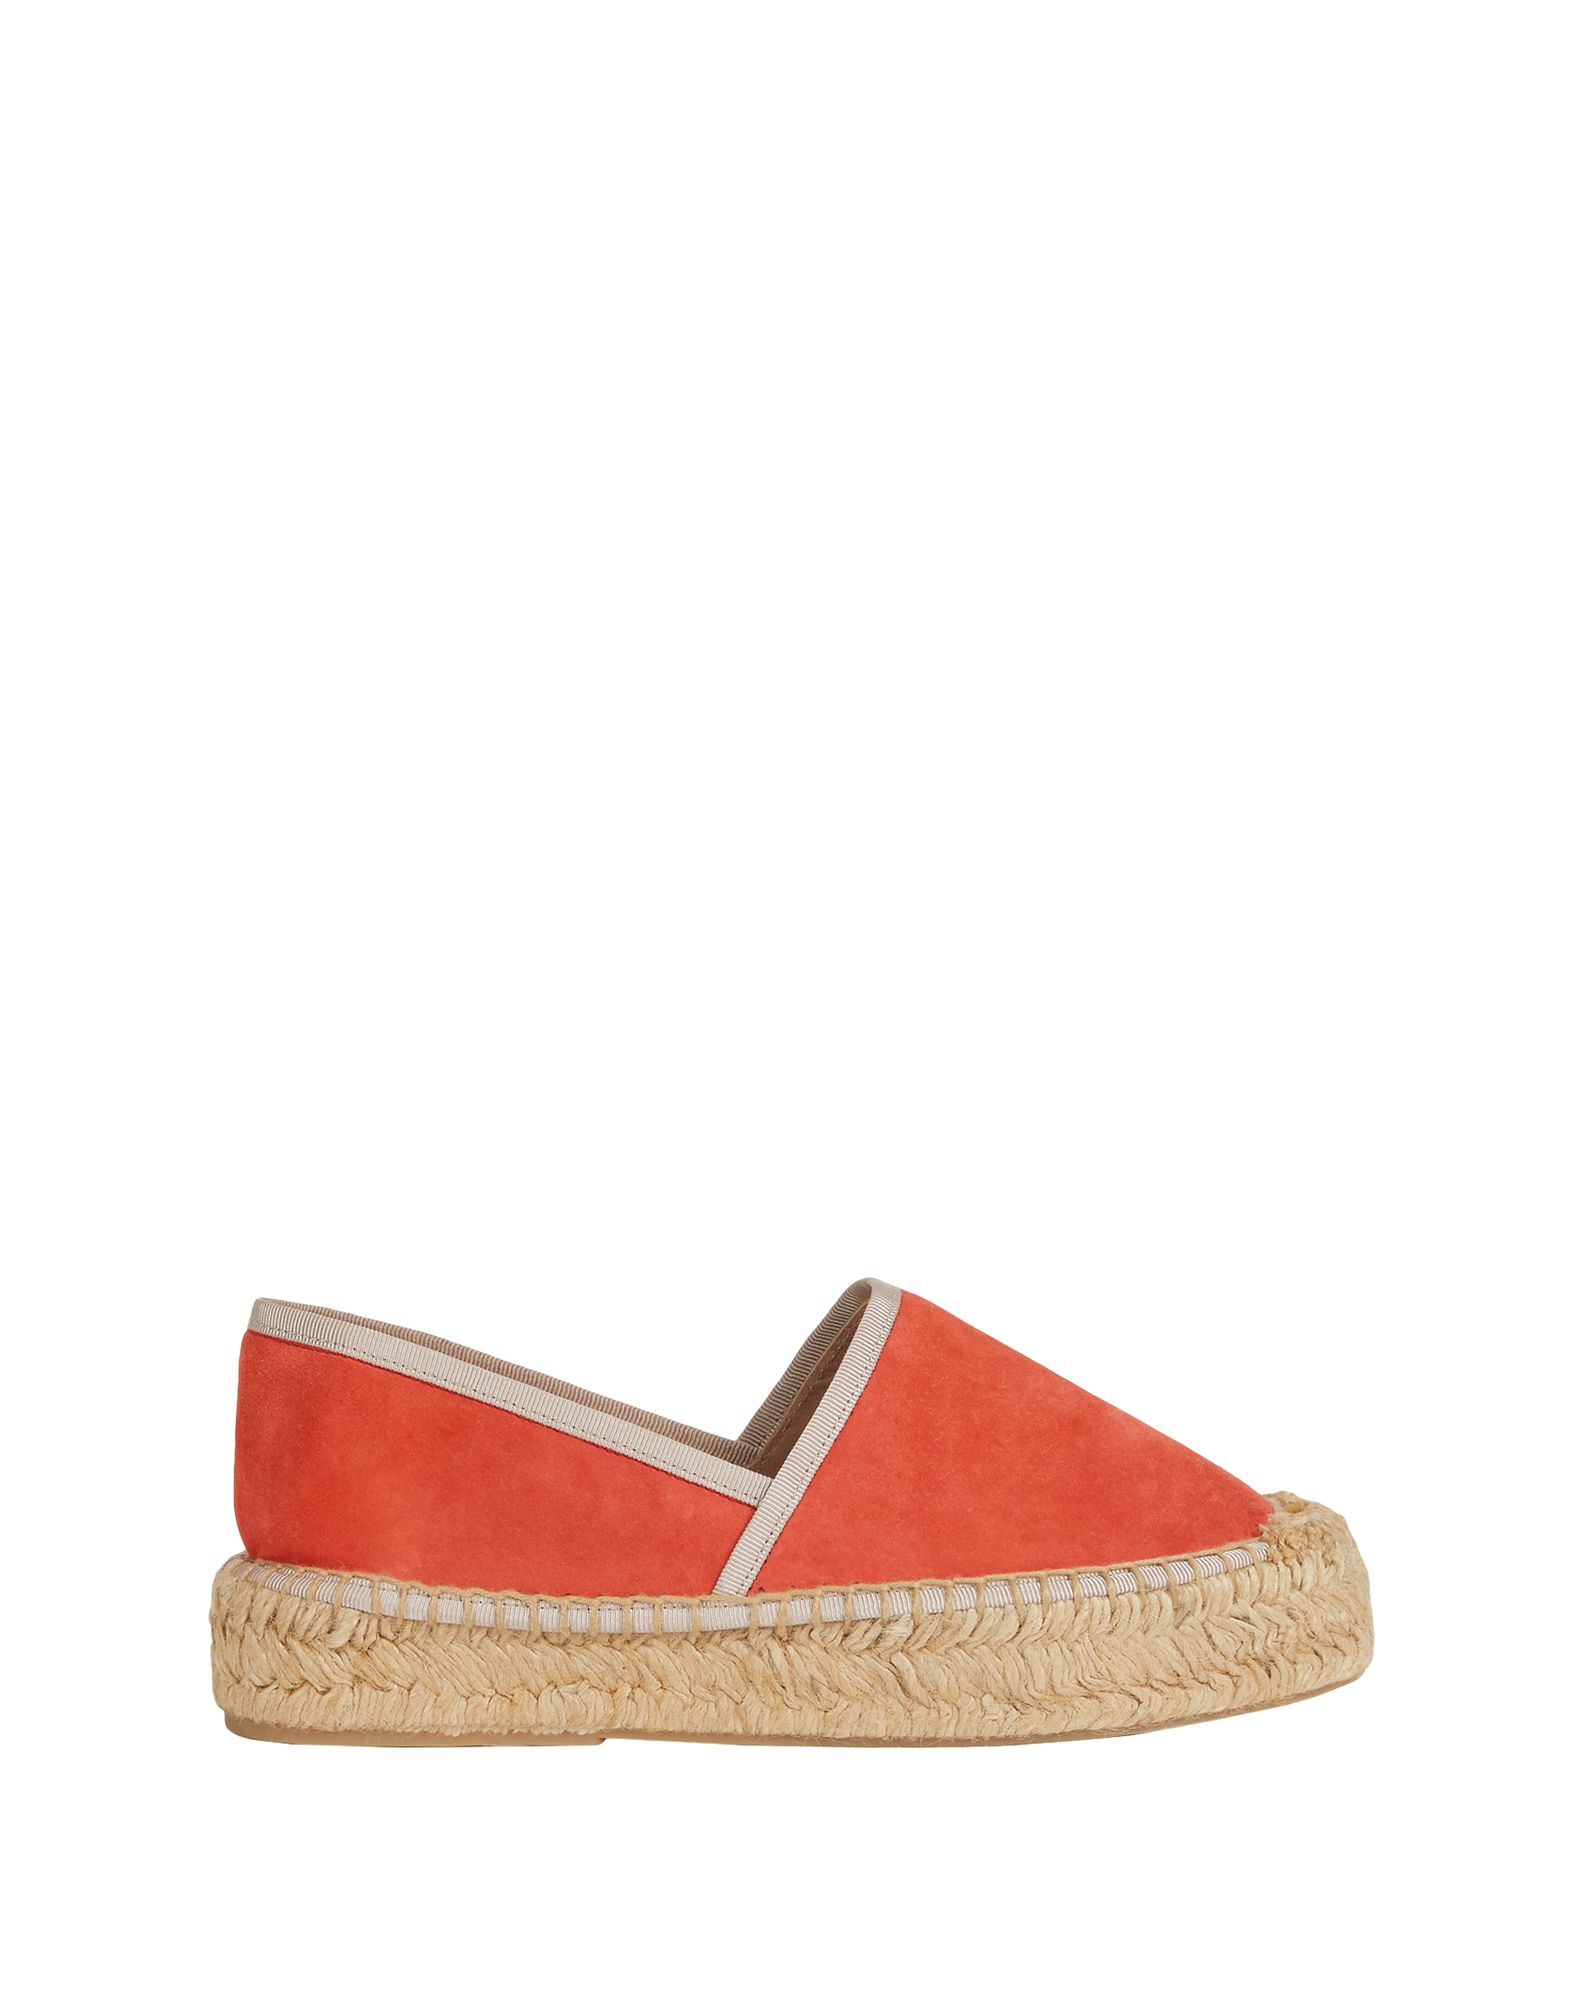 FURLA Espadrilles. nubuck, no appliqués, solid color, round toeline, flatform, fully lined, rubber sole, contains non-textile parts of animal origin. 70% Soft Leather, 20% Jute, 10% Polyester